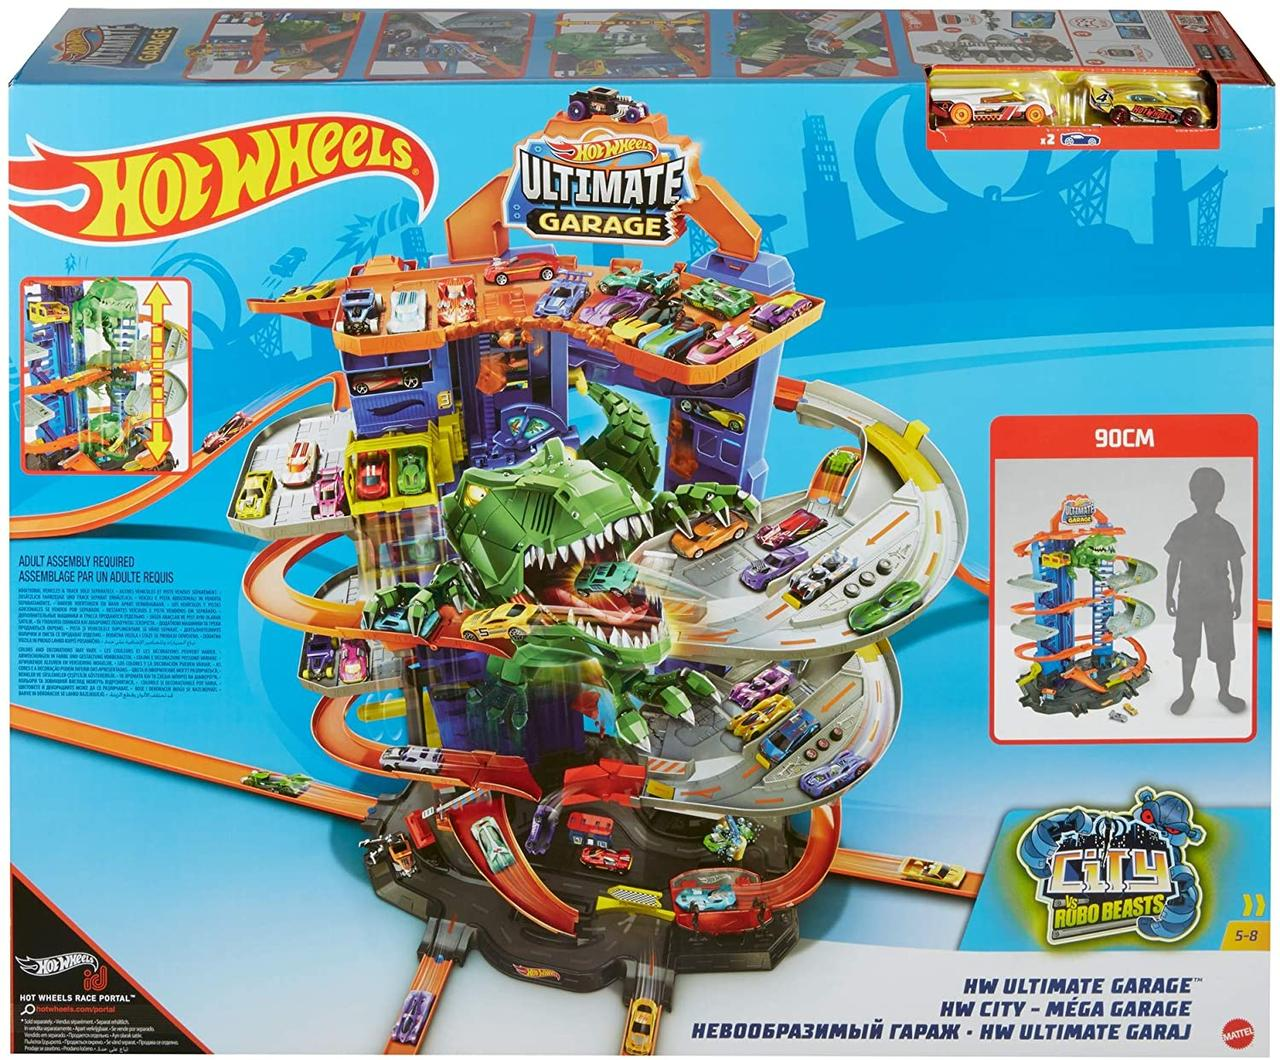 Игровой набор Хот Вилс Ультимейт Гараж Оригинал Hot Wheels City Robo T-Rex Ultimate Garage (GJL14)